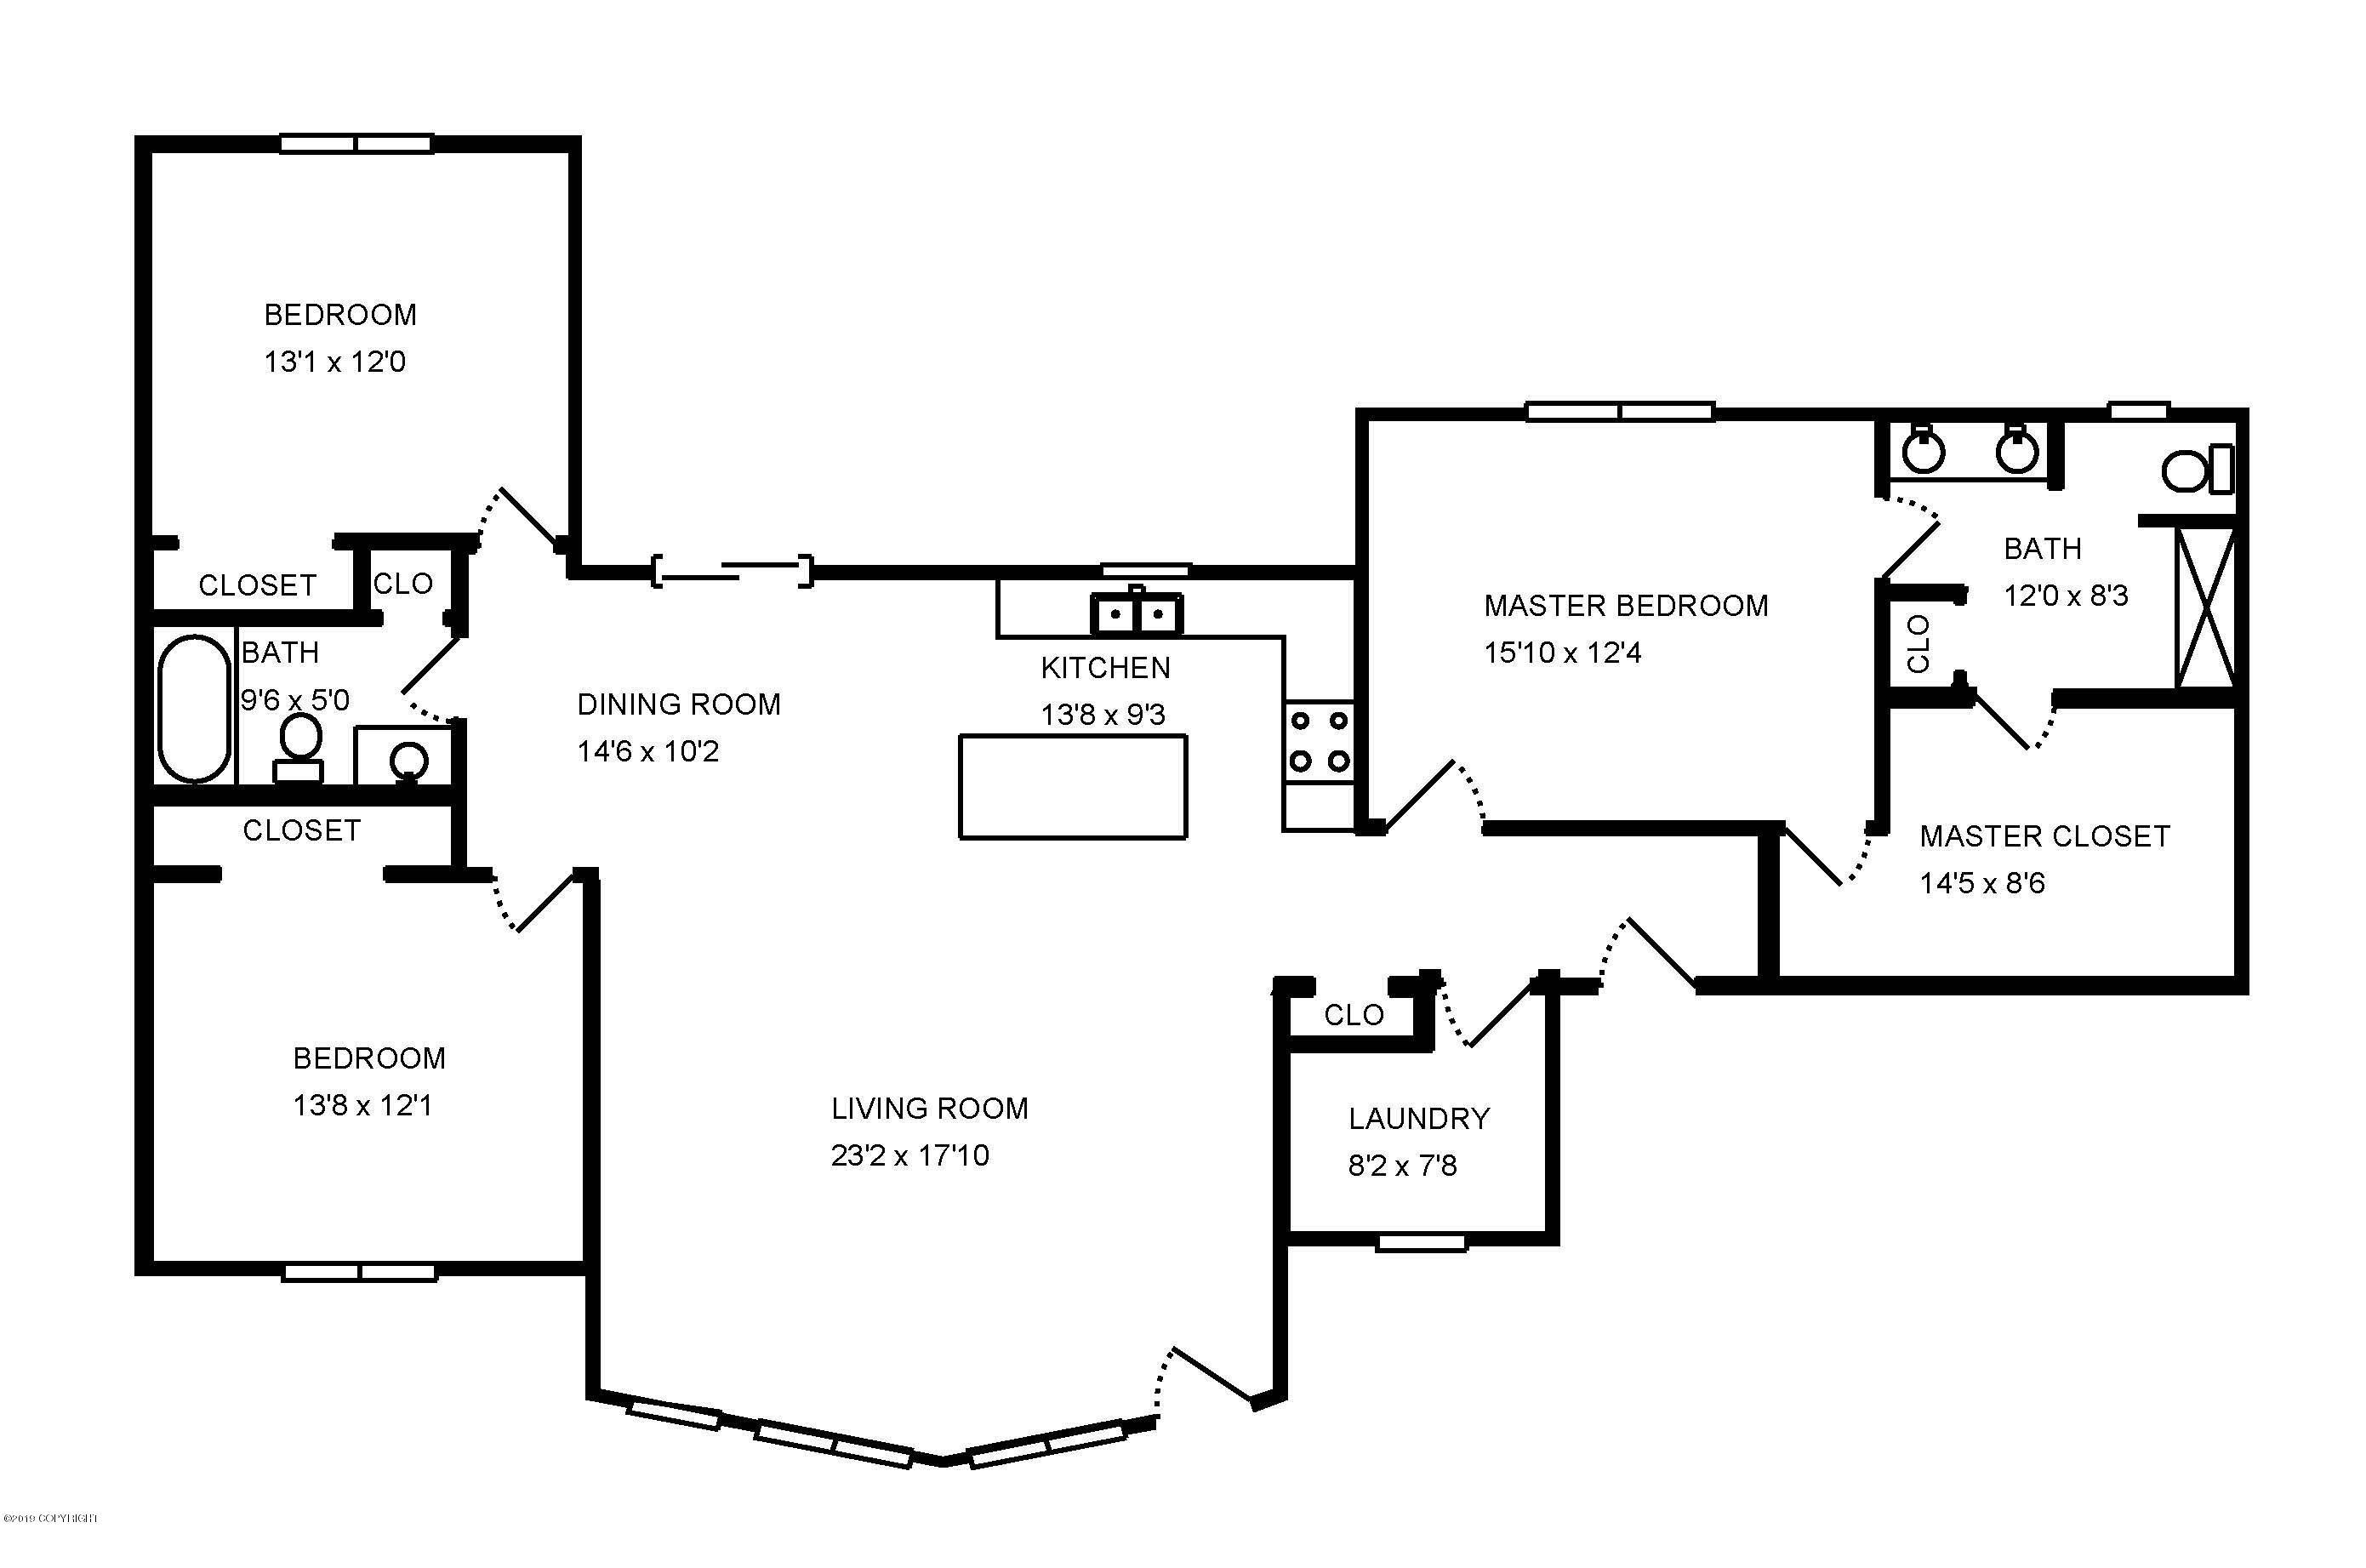 1689 W Gold Bar Road, Wasilla, AK.| MLS# 19-1716 | Mossy Oak ... Alaska Wasilla House Plans on kodiak alaska houses, craig alaska houses, sitka alaska houses, bethel alaska houses, nightmute alaska houses, sand point alaska houses, nome alaska houses, mcgrath alaska houses,